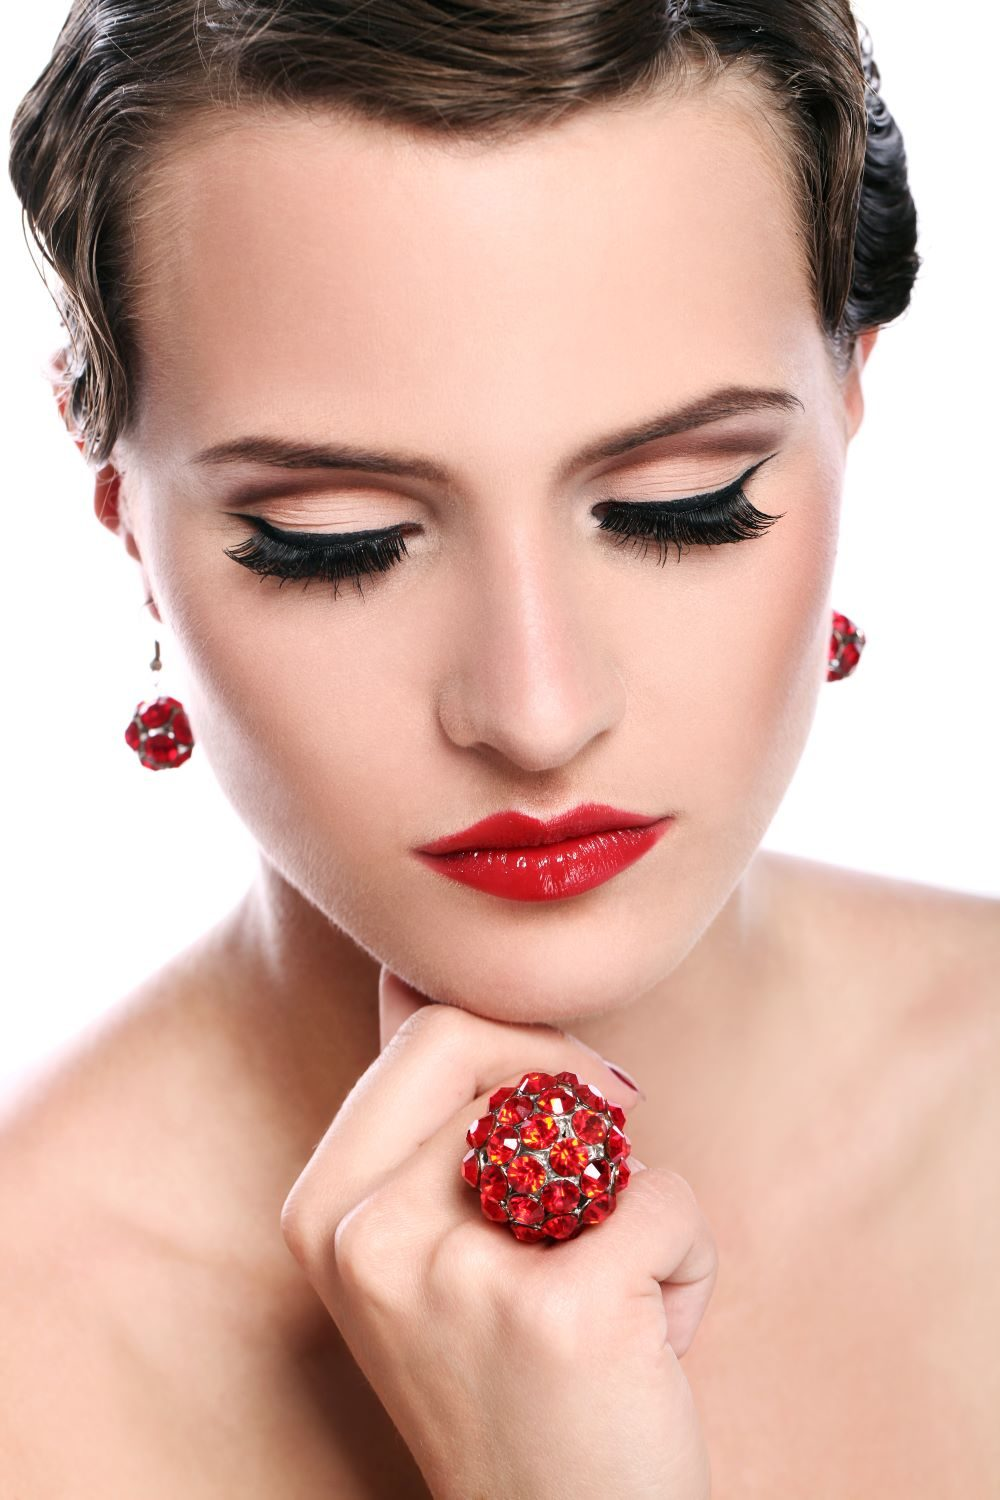 Fall In Love With Rubies This Summer